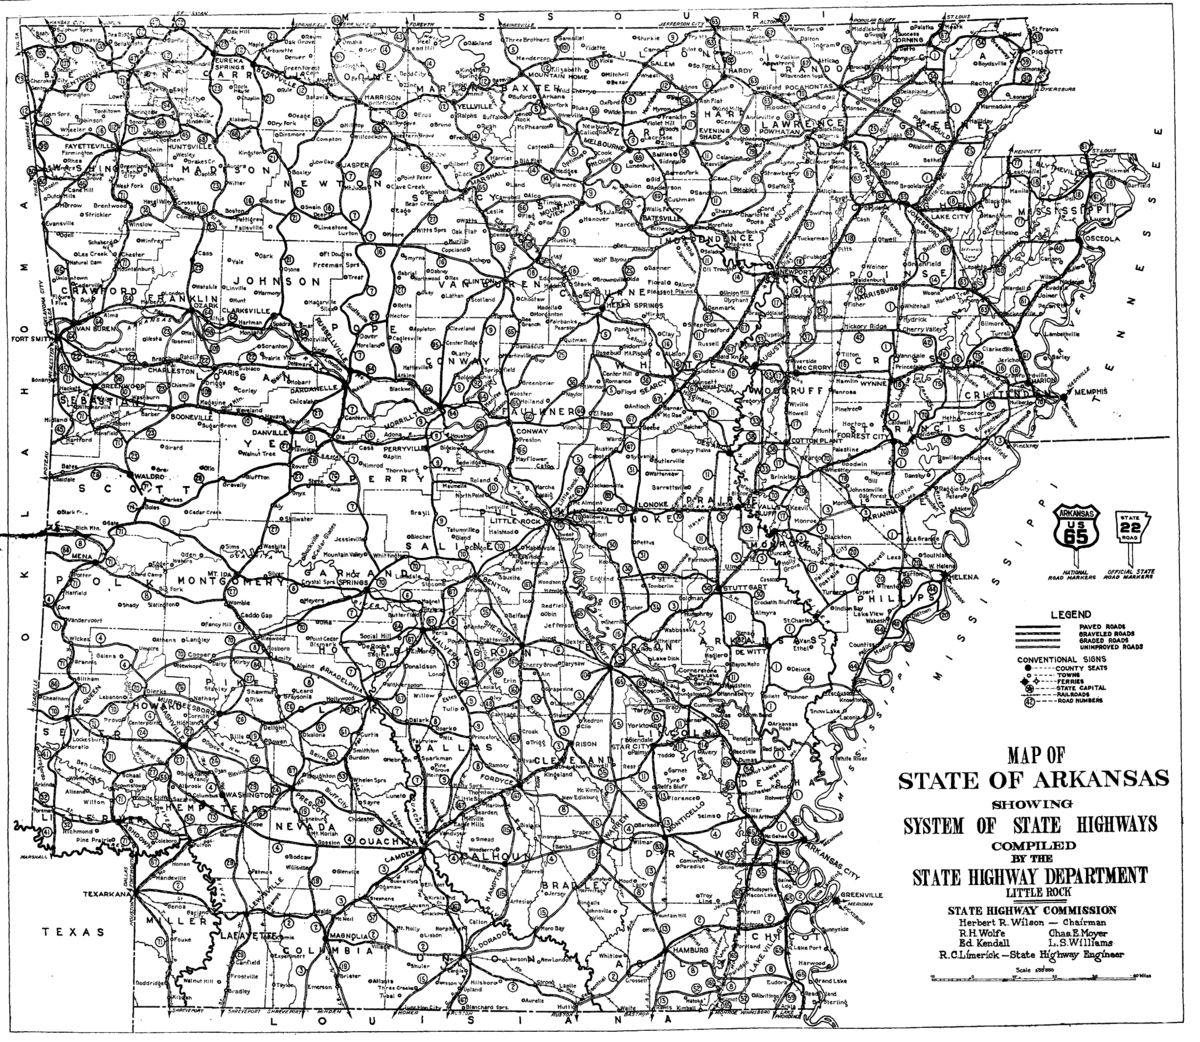 Arkansas State Highway Numbering Wikipedia - Arkansas highway map